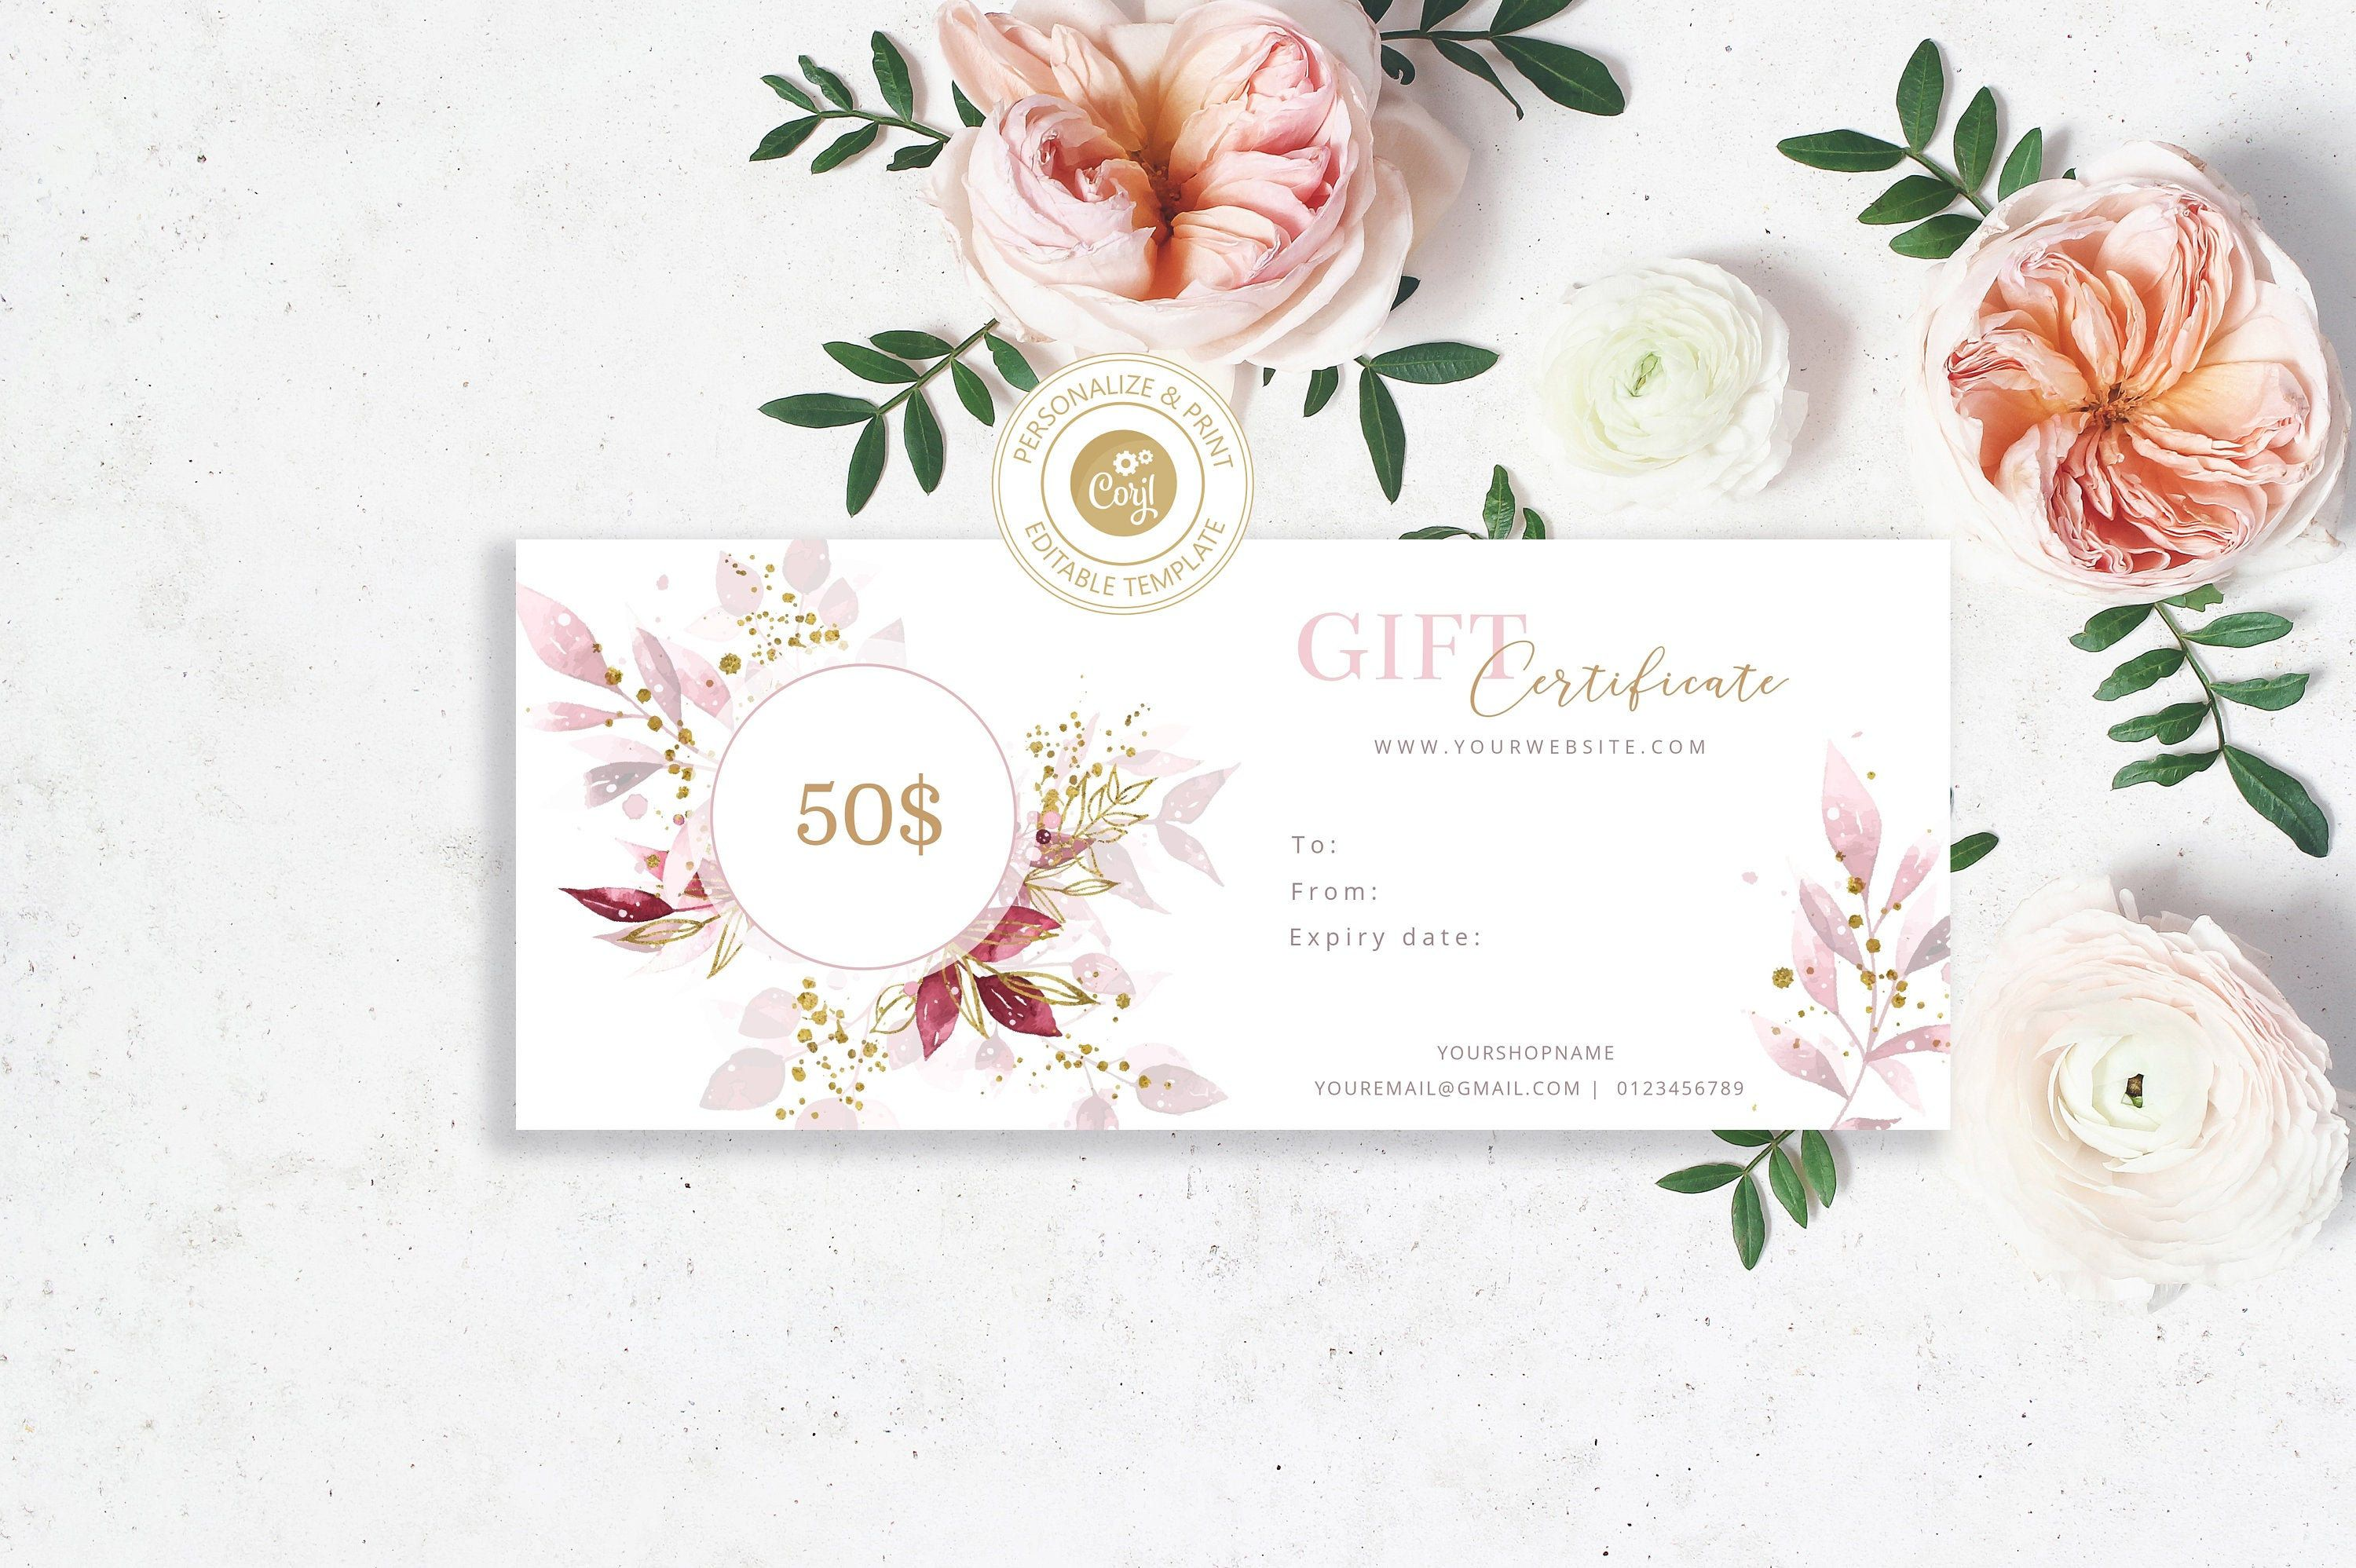 Editable Gift Certificate Template With Pink Watercolor Etsy Printable Gift Cards Gift Certificate Template Certificate Templates